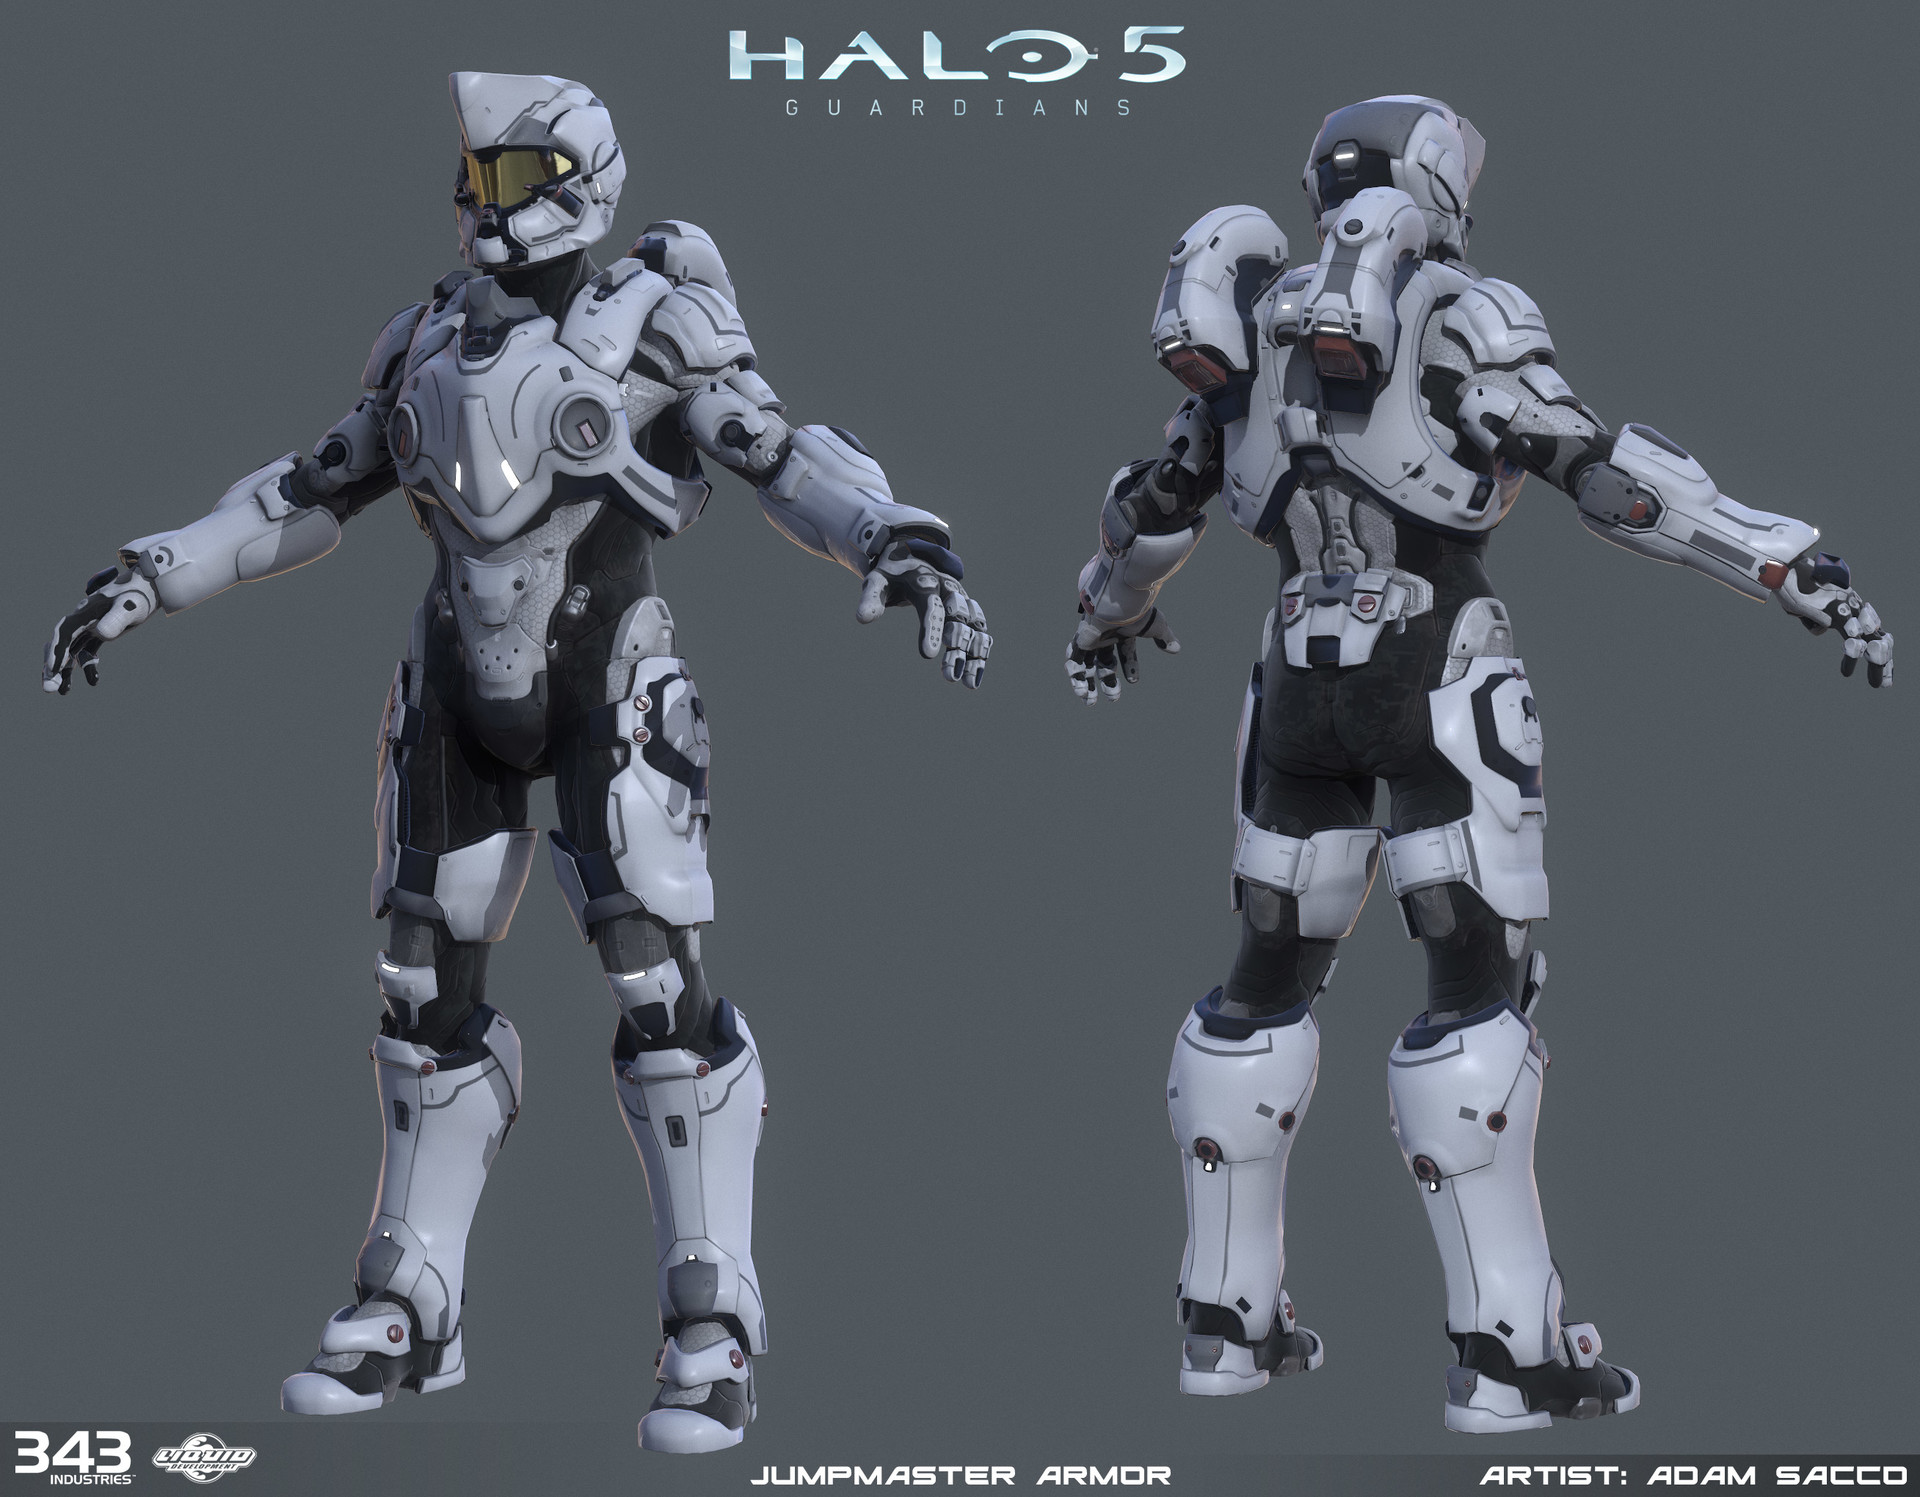 Halo 5 - Jumpmaster armor - 3d game model